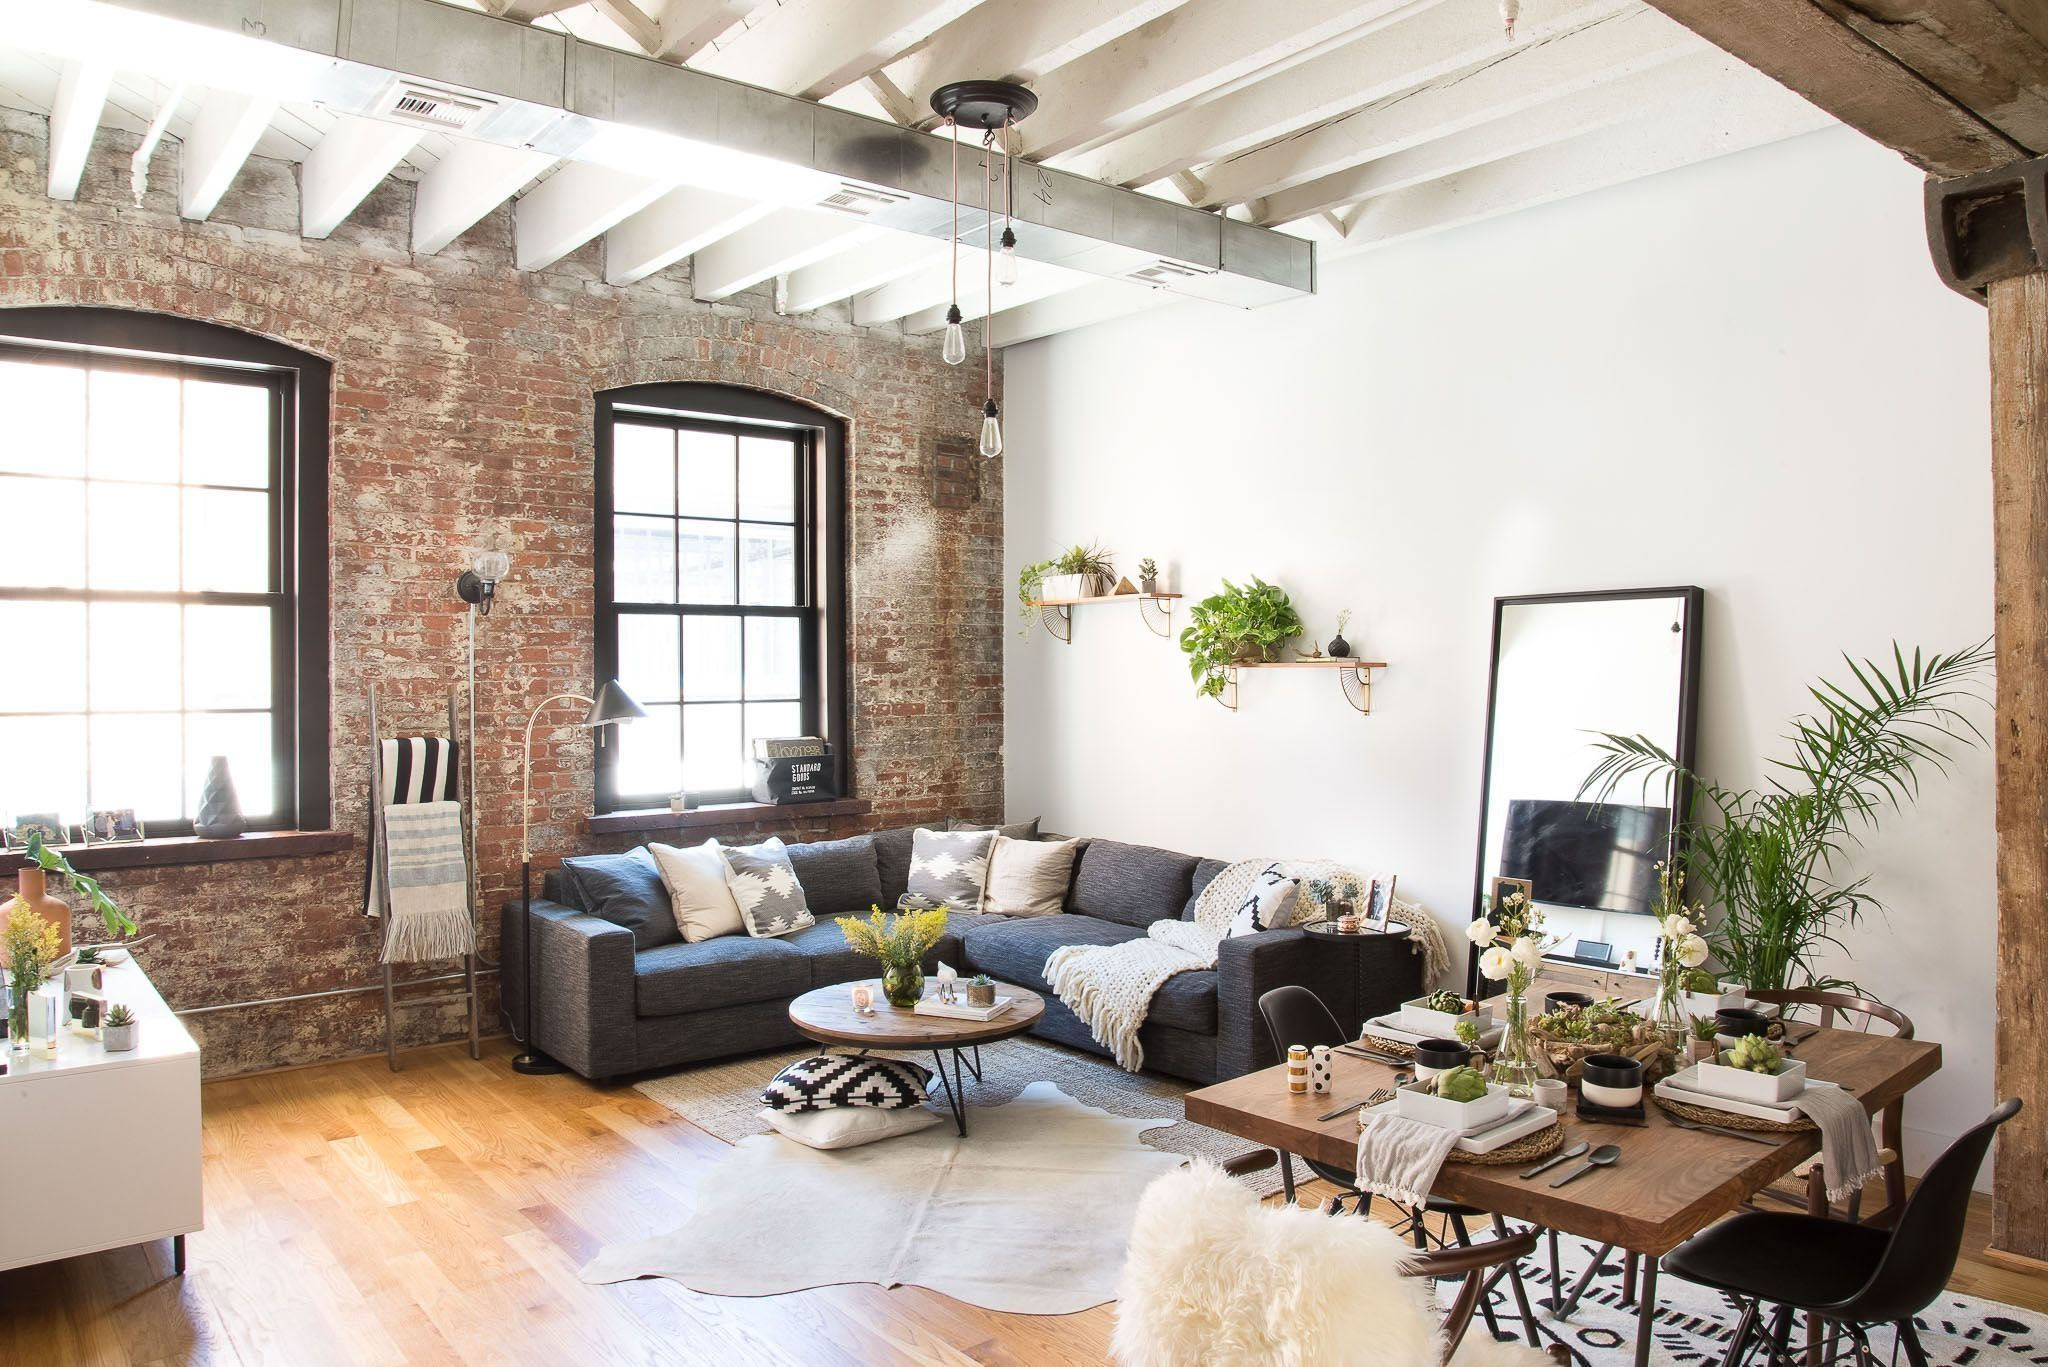 Cool 35 Top Class Rustic Industrial Living Room Decor Ideas http ...